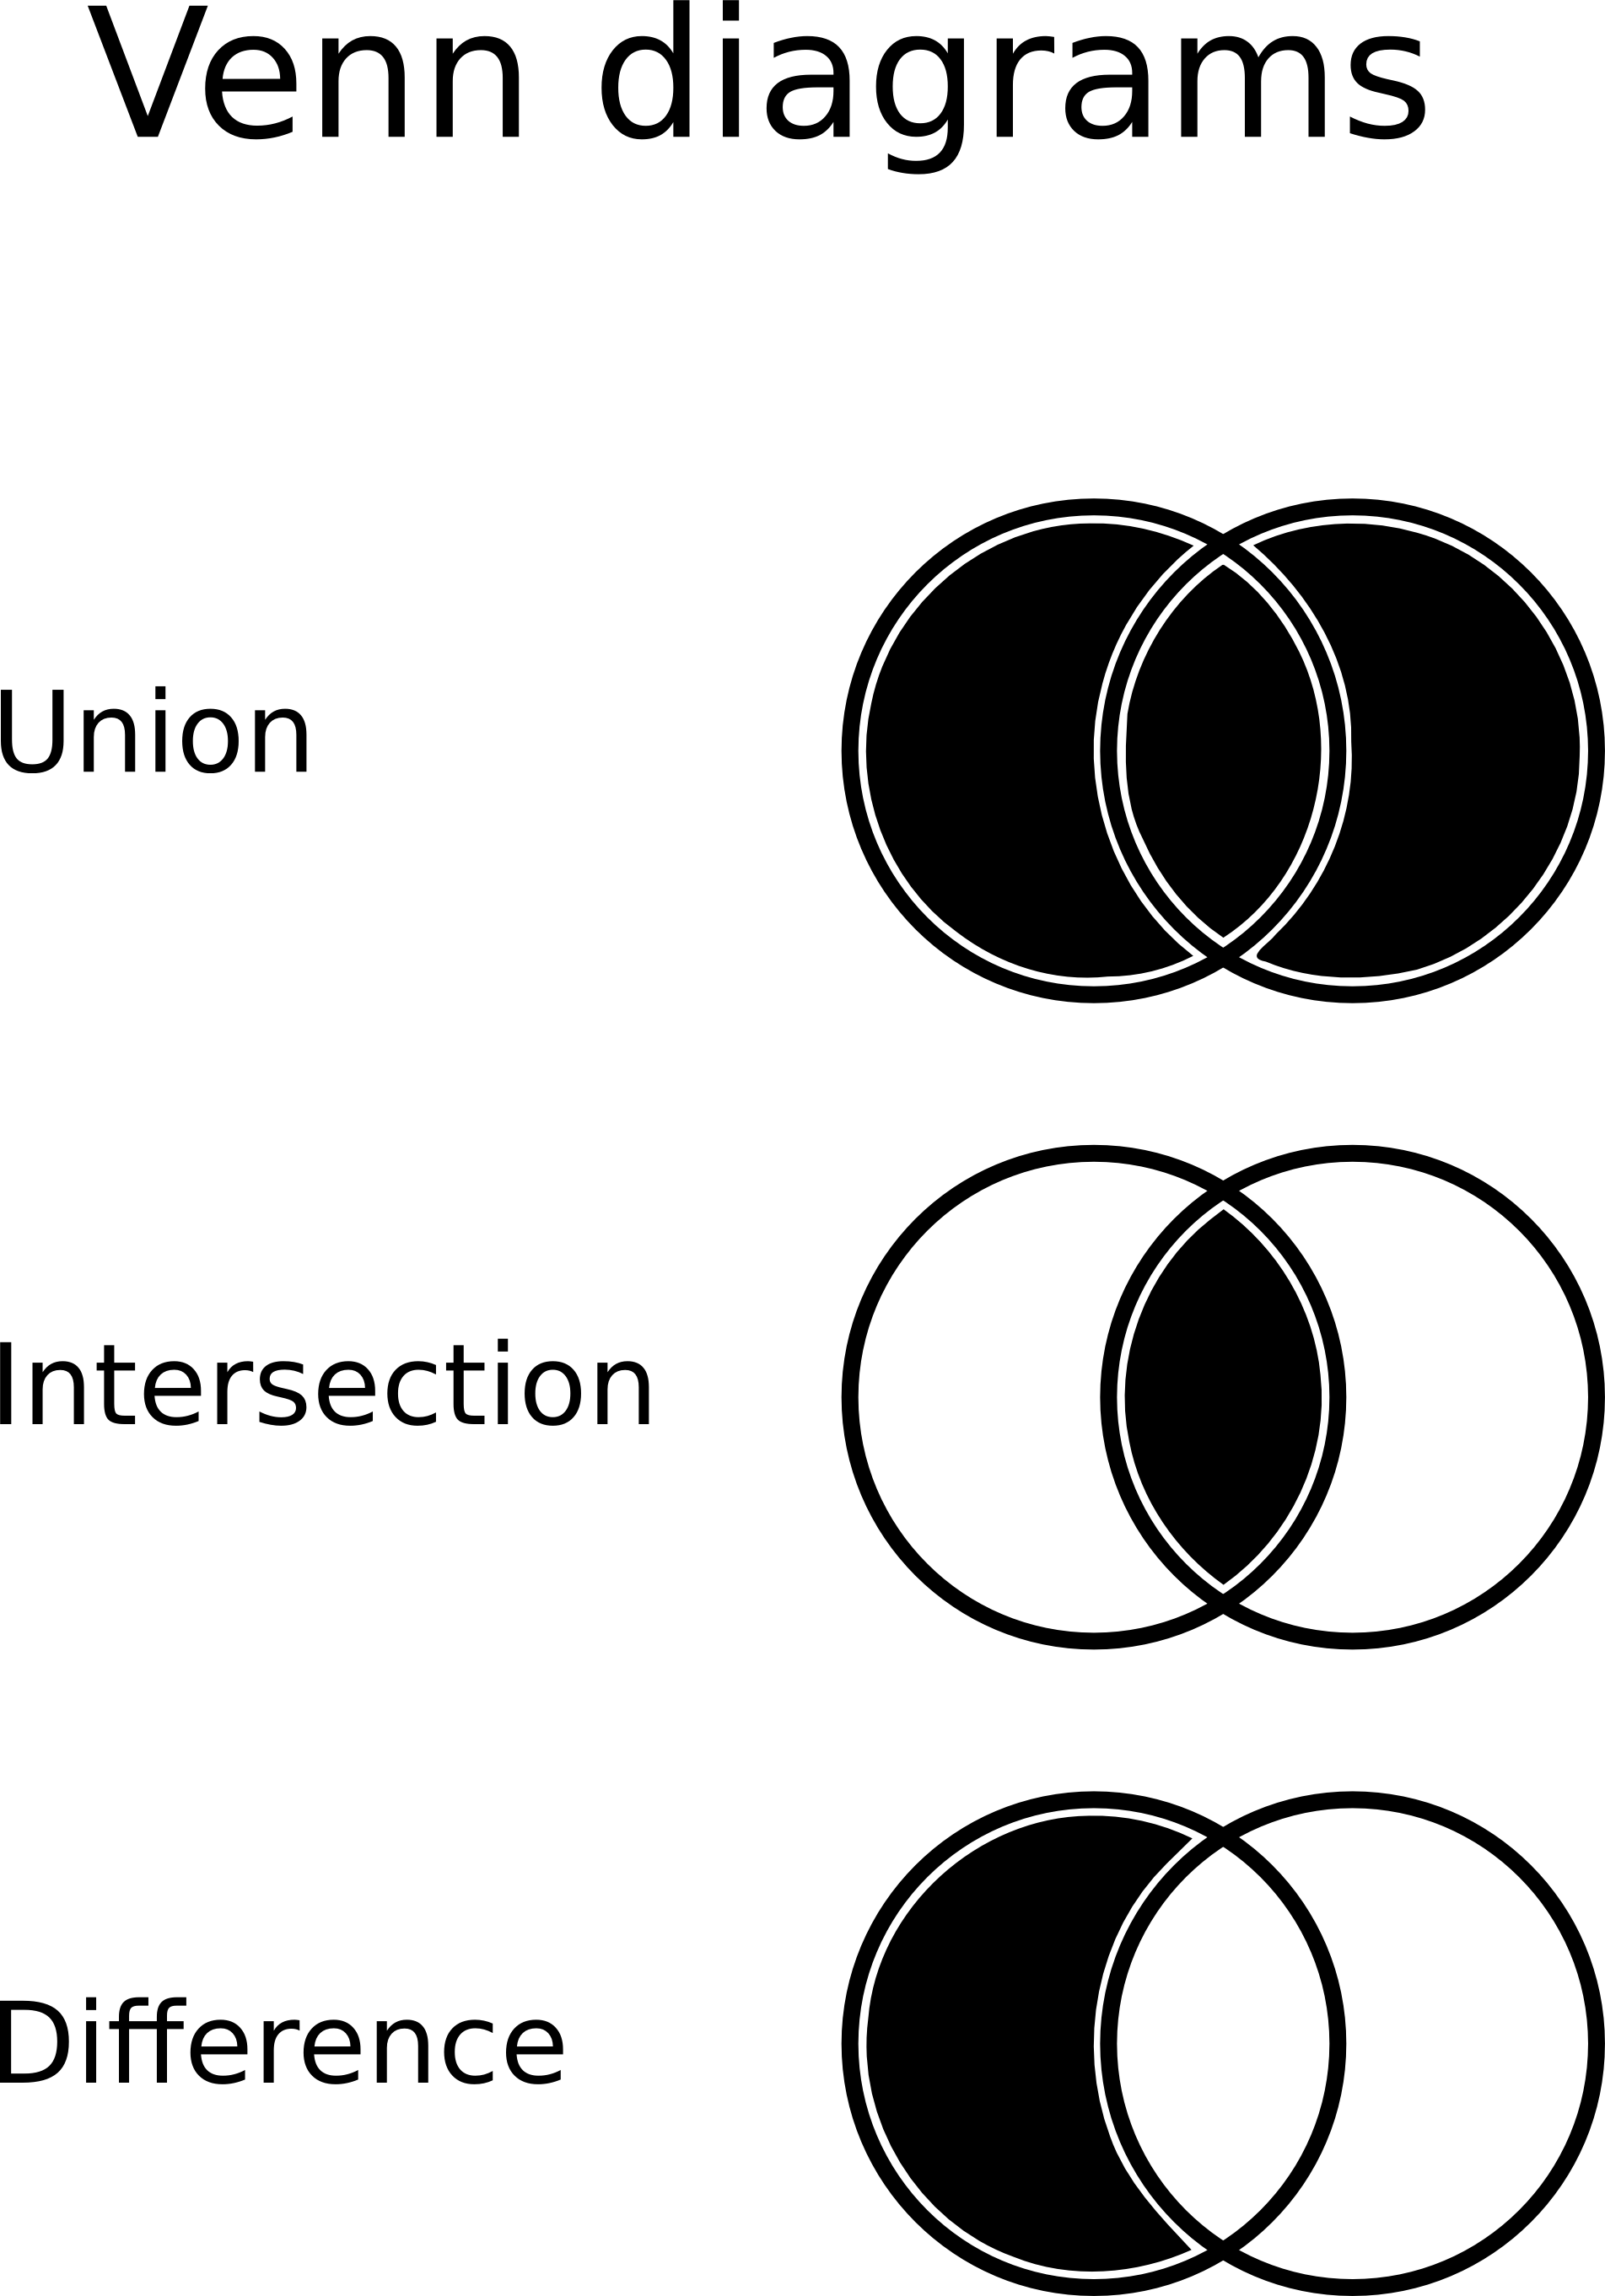 set theory venn diagram examples exercises with answers icon request diagrams  issue 2164 fortawesome